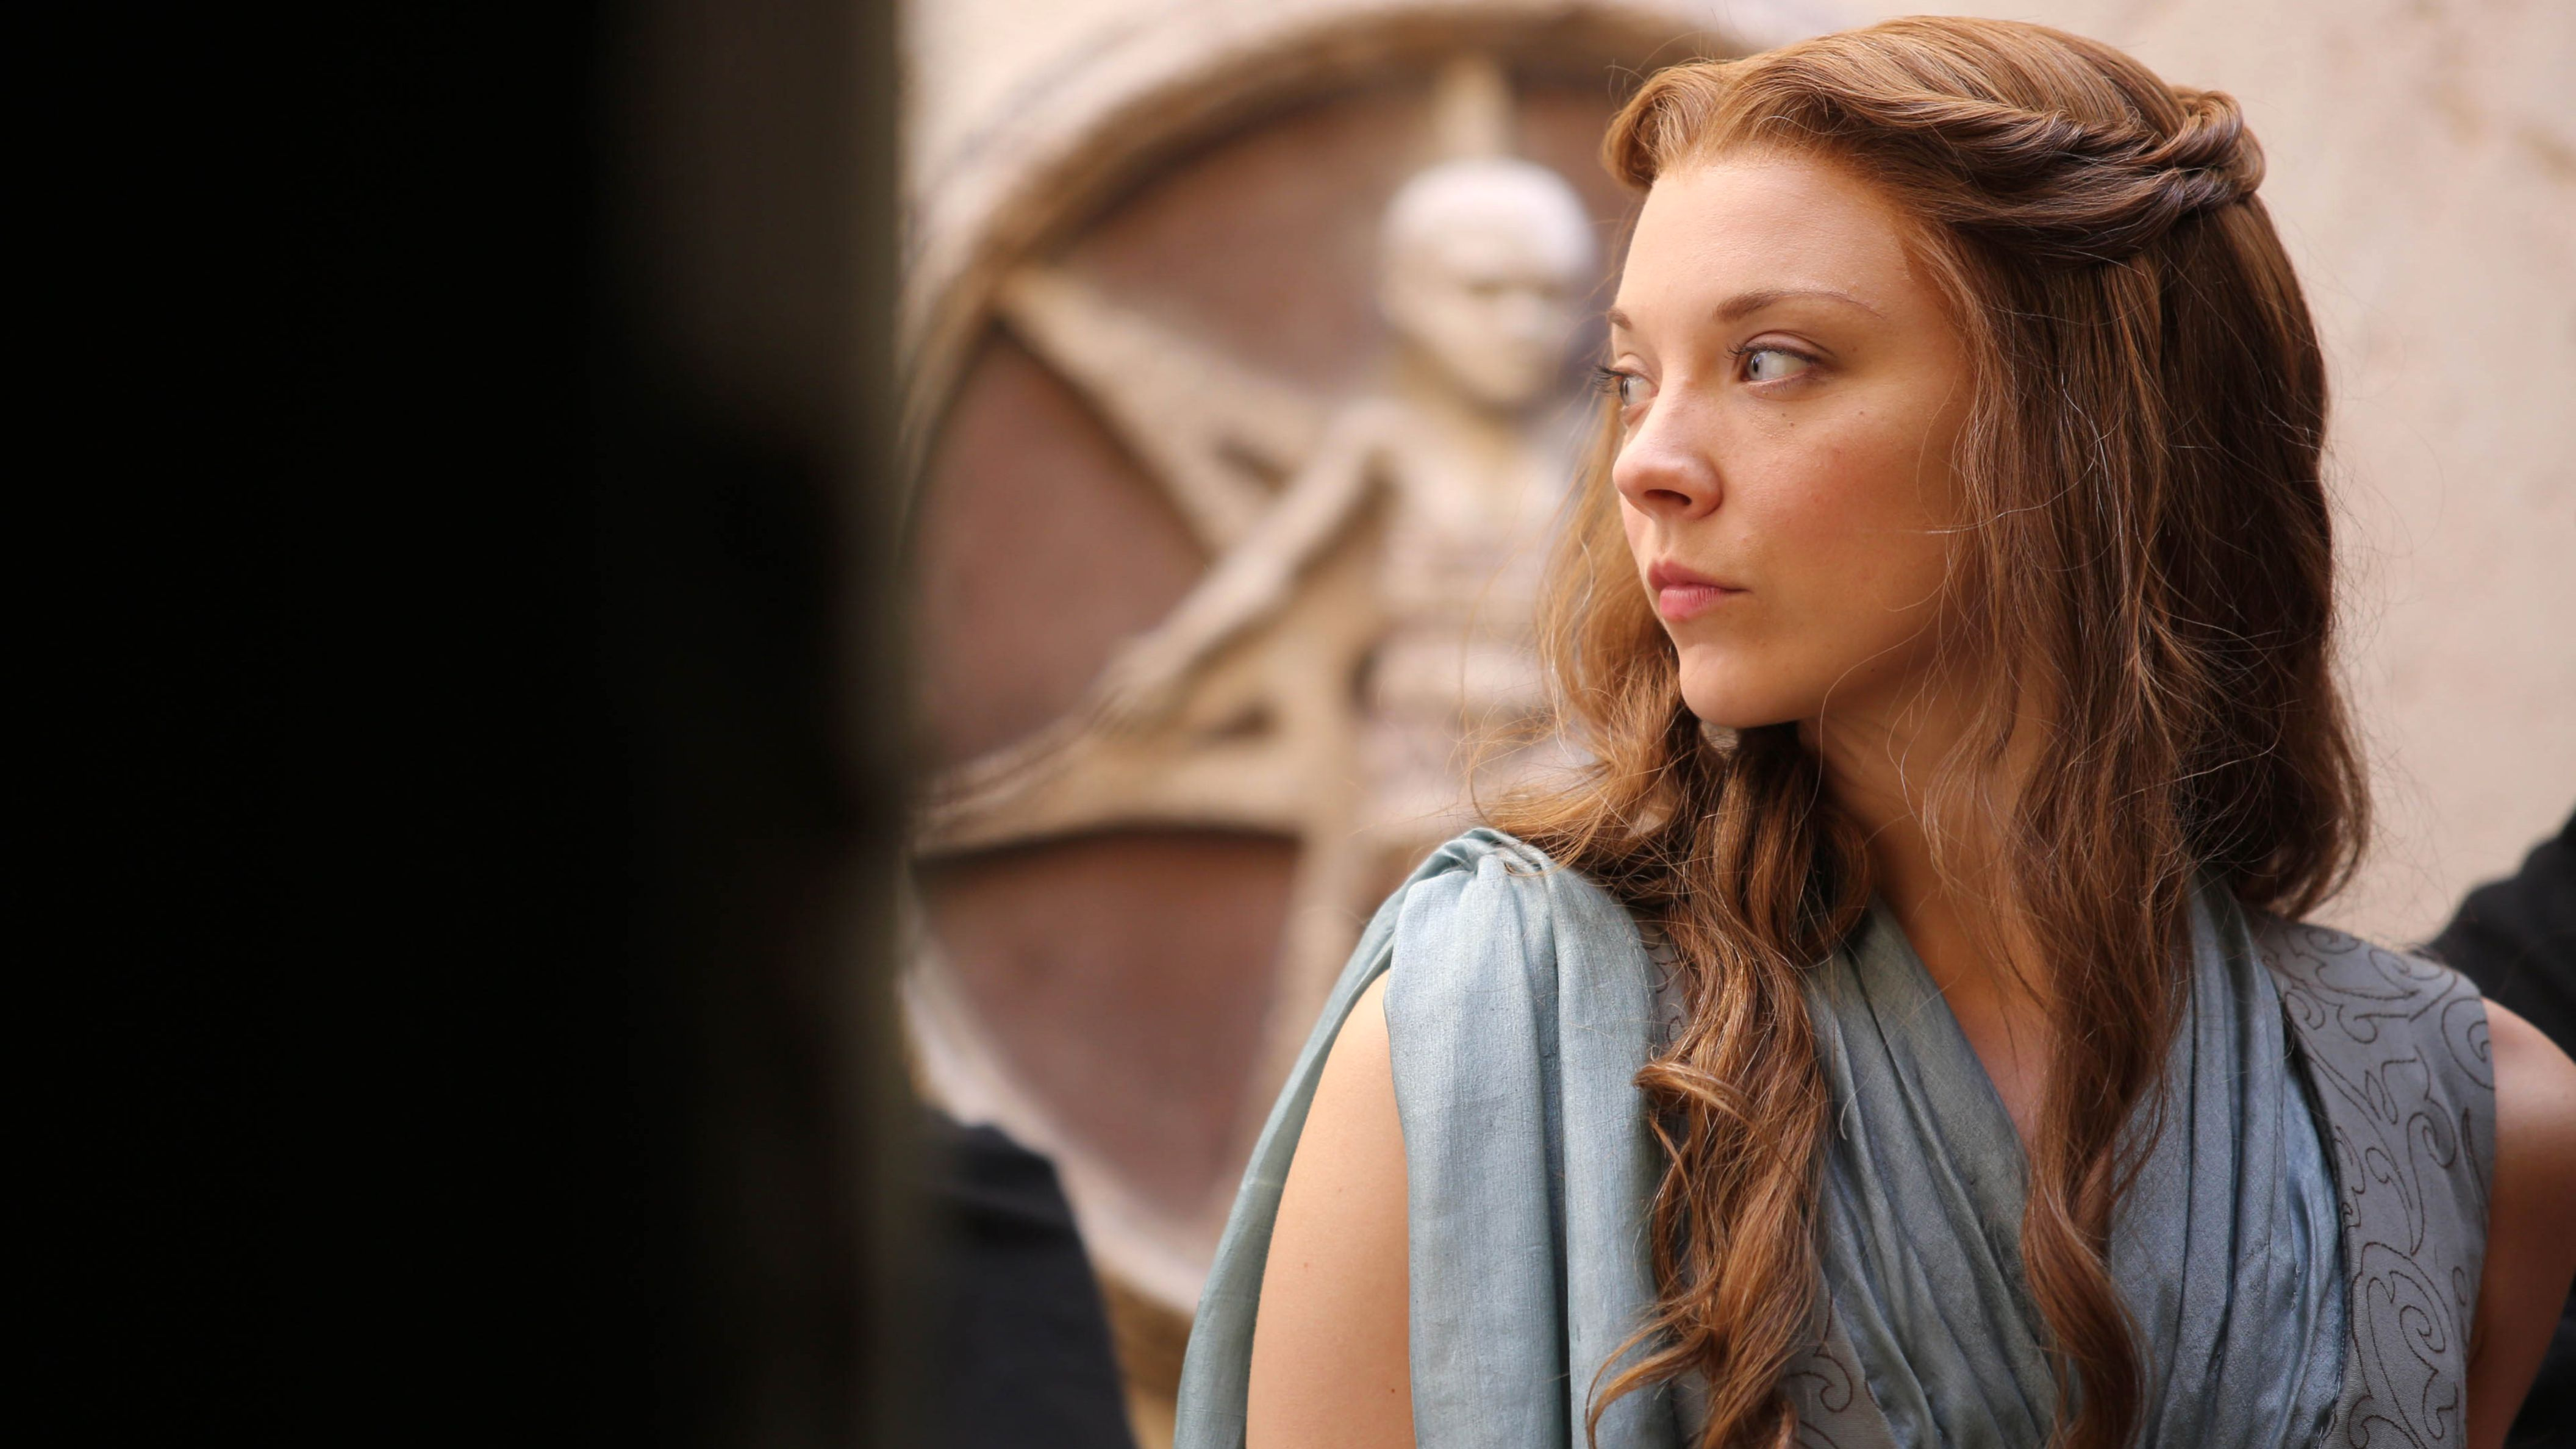 Download free HD Natalie Dormer In Game Of Thrones HD Wallpaper, image